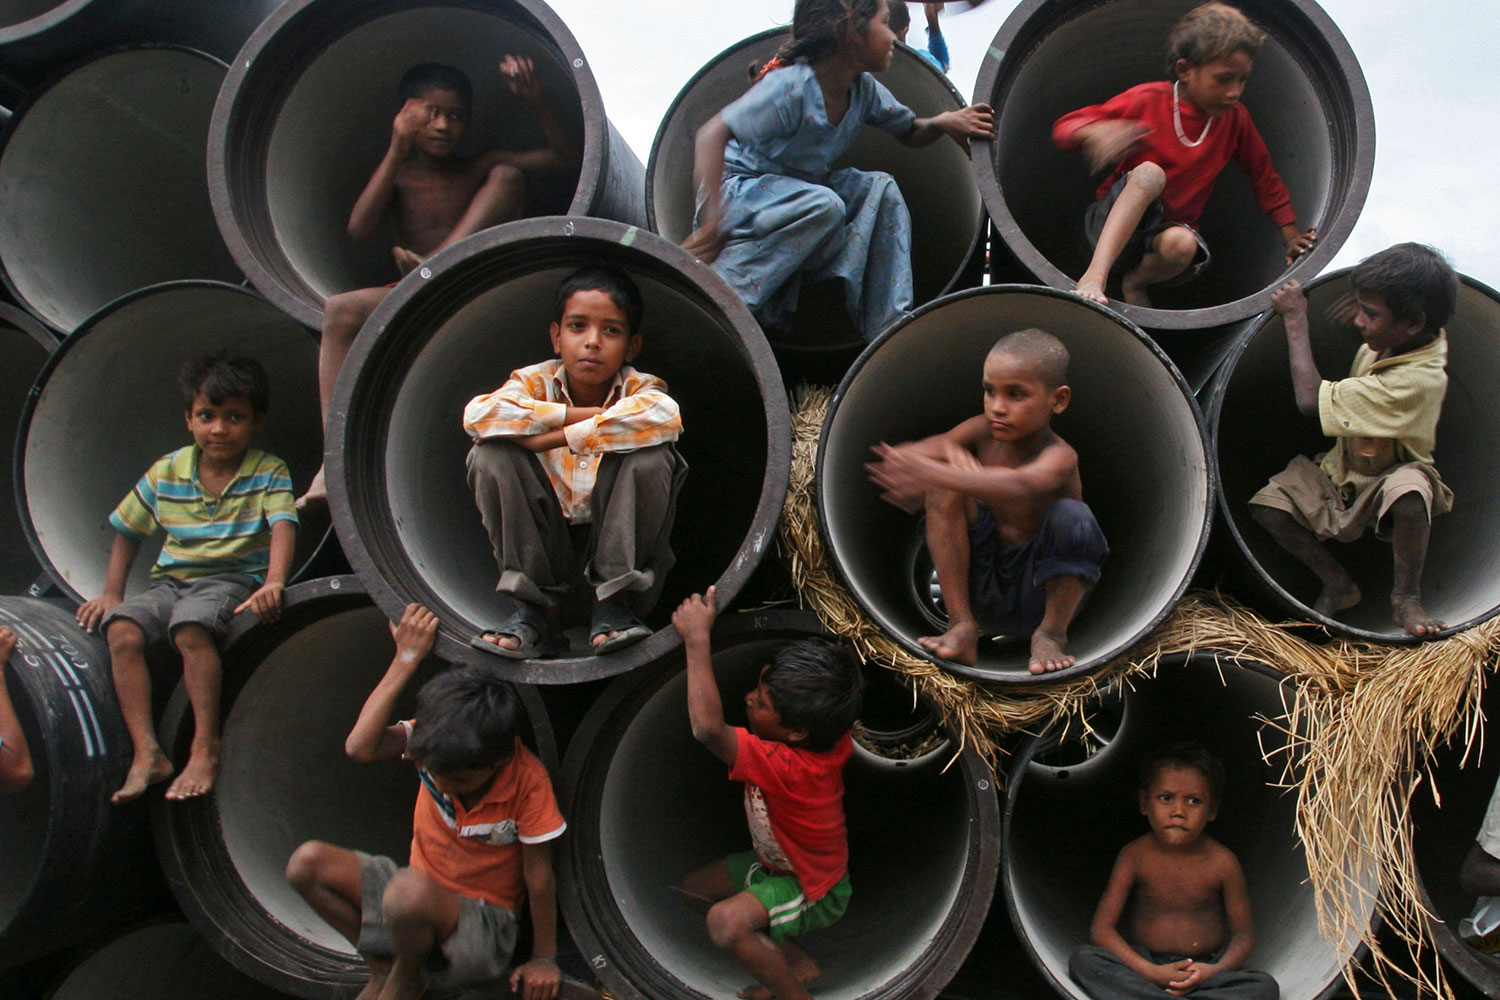 Children play in water pipes at a construction site on the banks of the Yamuna River on July 26, 2010in the northern Indian city of Allahabad. Picture shows several rows of large, concrete sewer pipes stacked on top of each other with their fat openings facing the camera. Each is large enough to fit one child huddled at the opening. About ten children can be seen climbing about on the feature. REUTERS/Jitendra Prakash